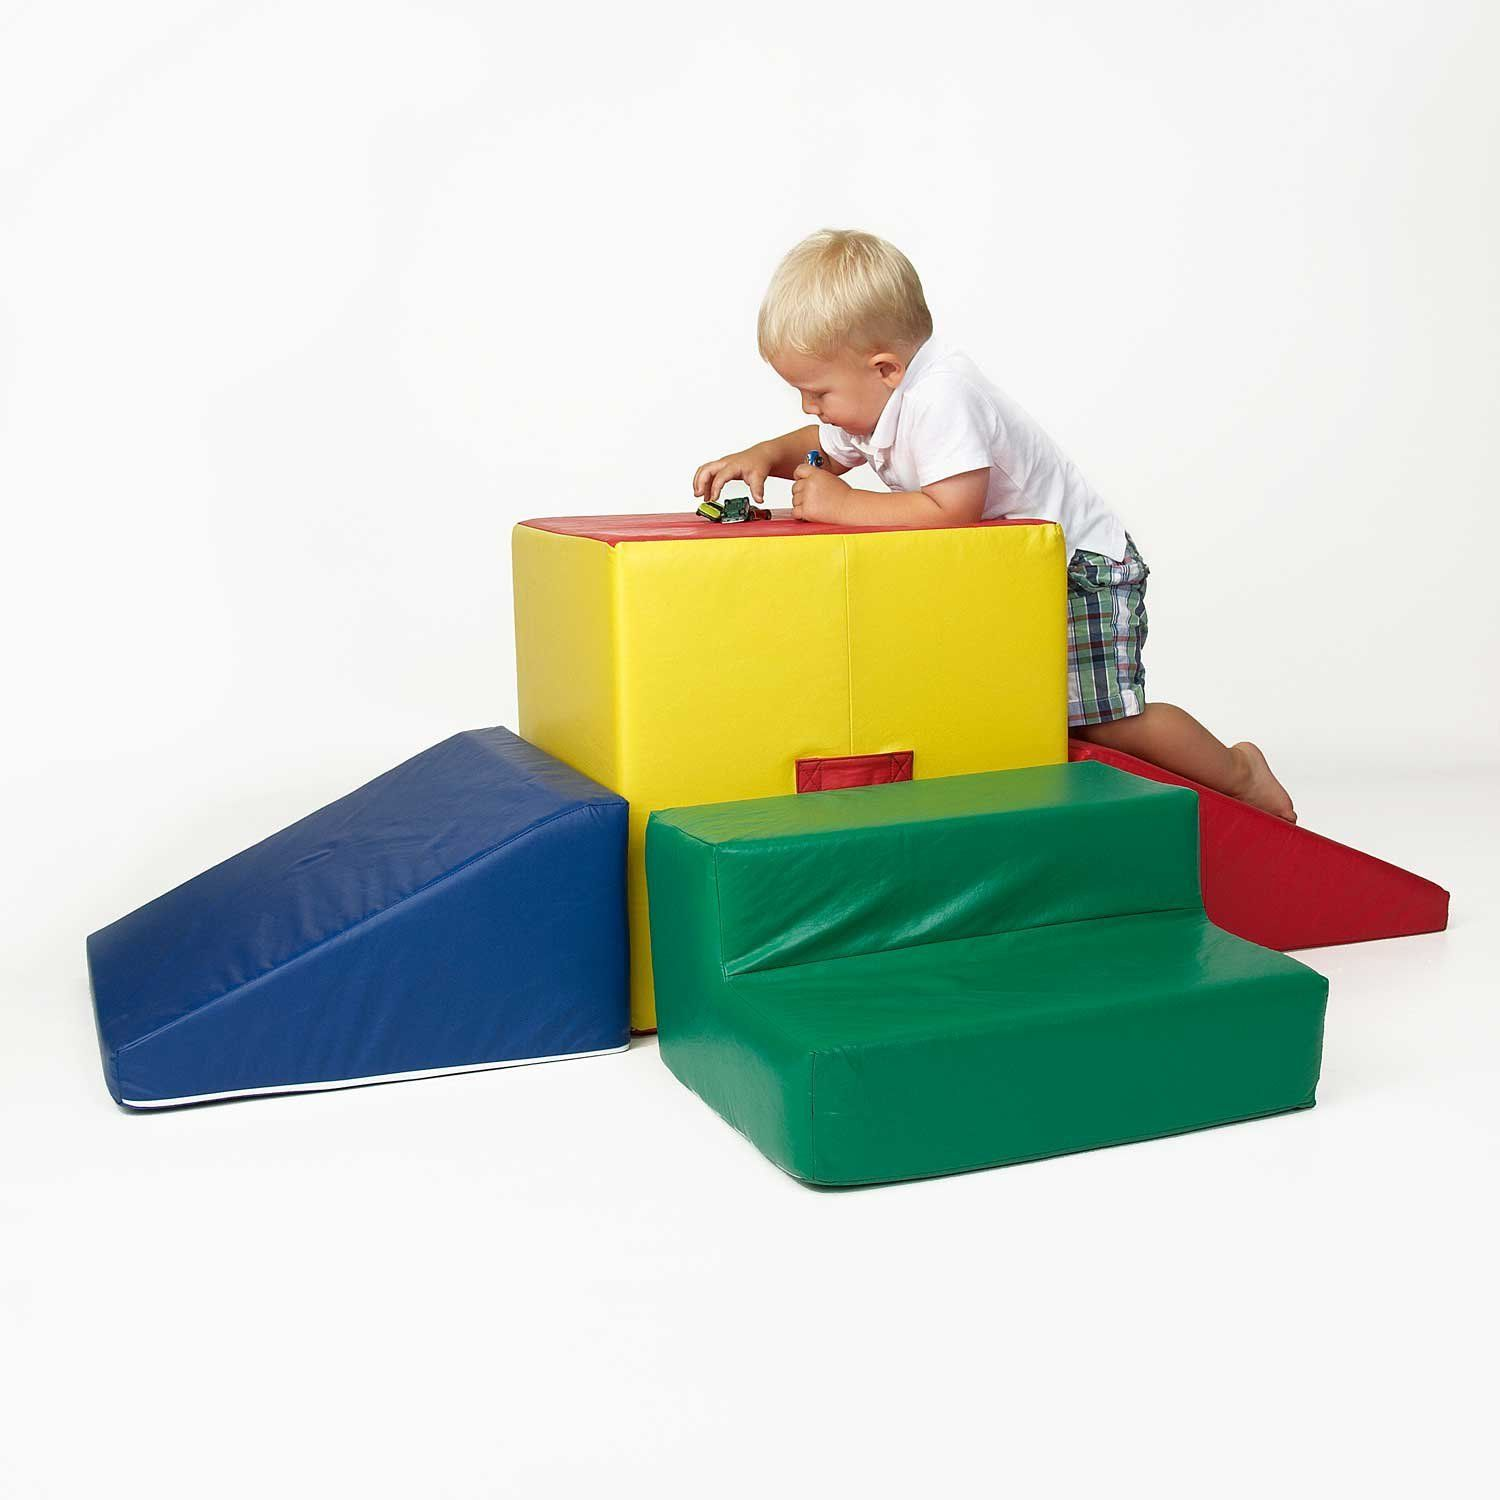 diy toddler climbing toys google search my boys toddler climbing toys toddler climbing. Black Bedroom Furniture Sets. Home Design Ideas